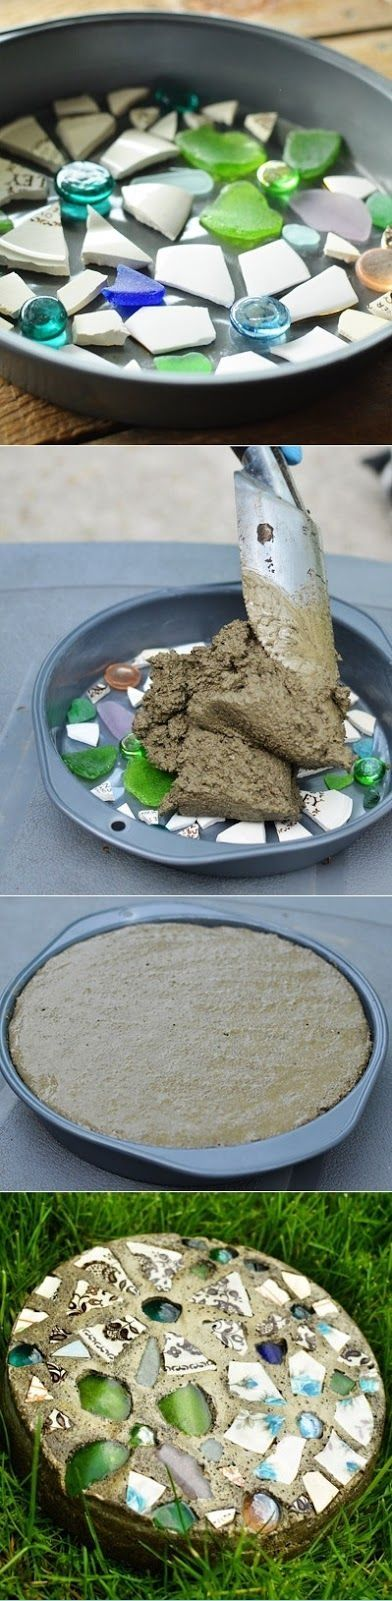 How to Make Stepping Stones - with a Cake Pan #steppingstonespathway